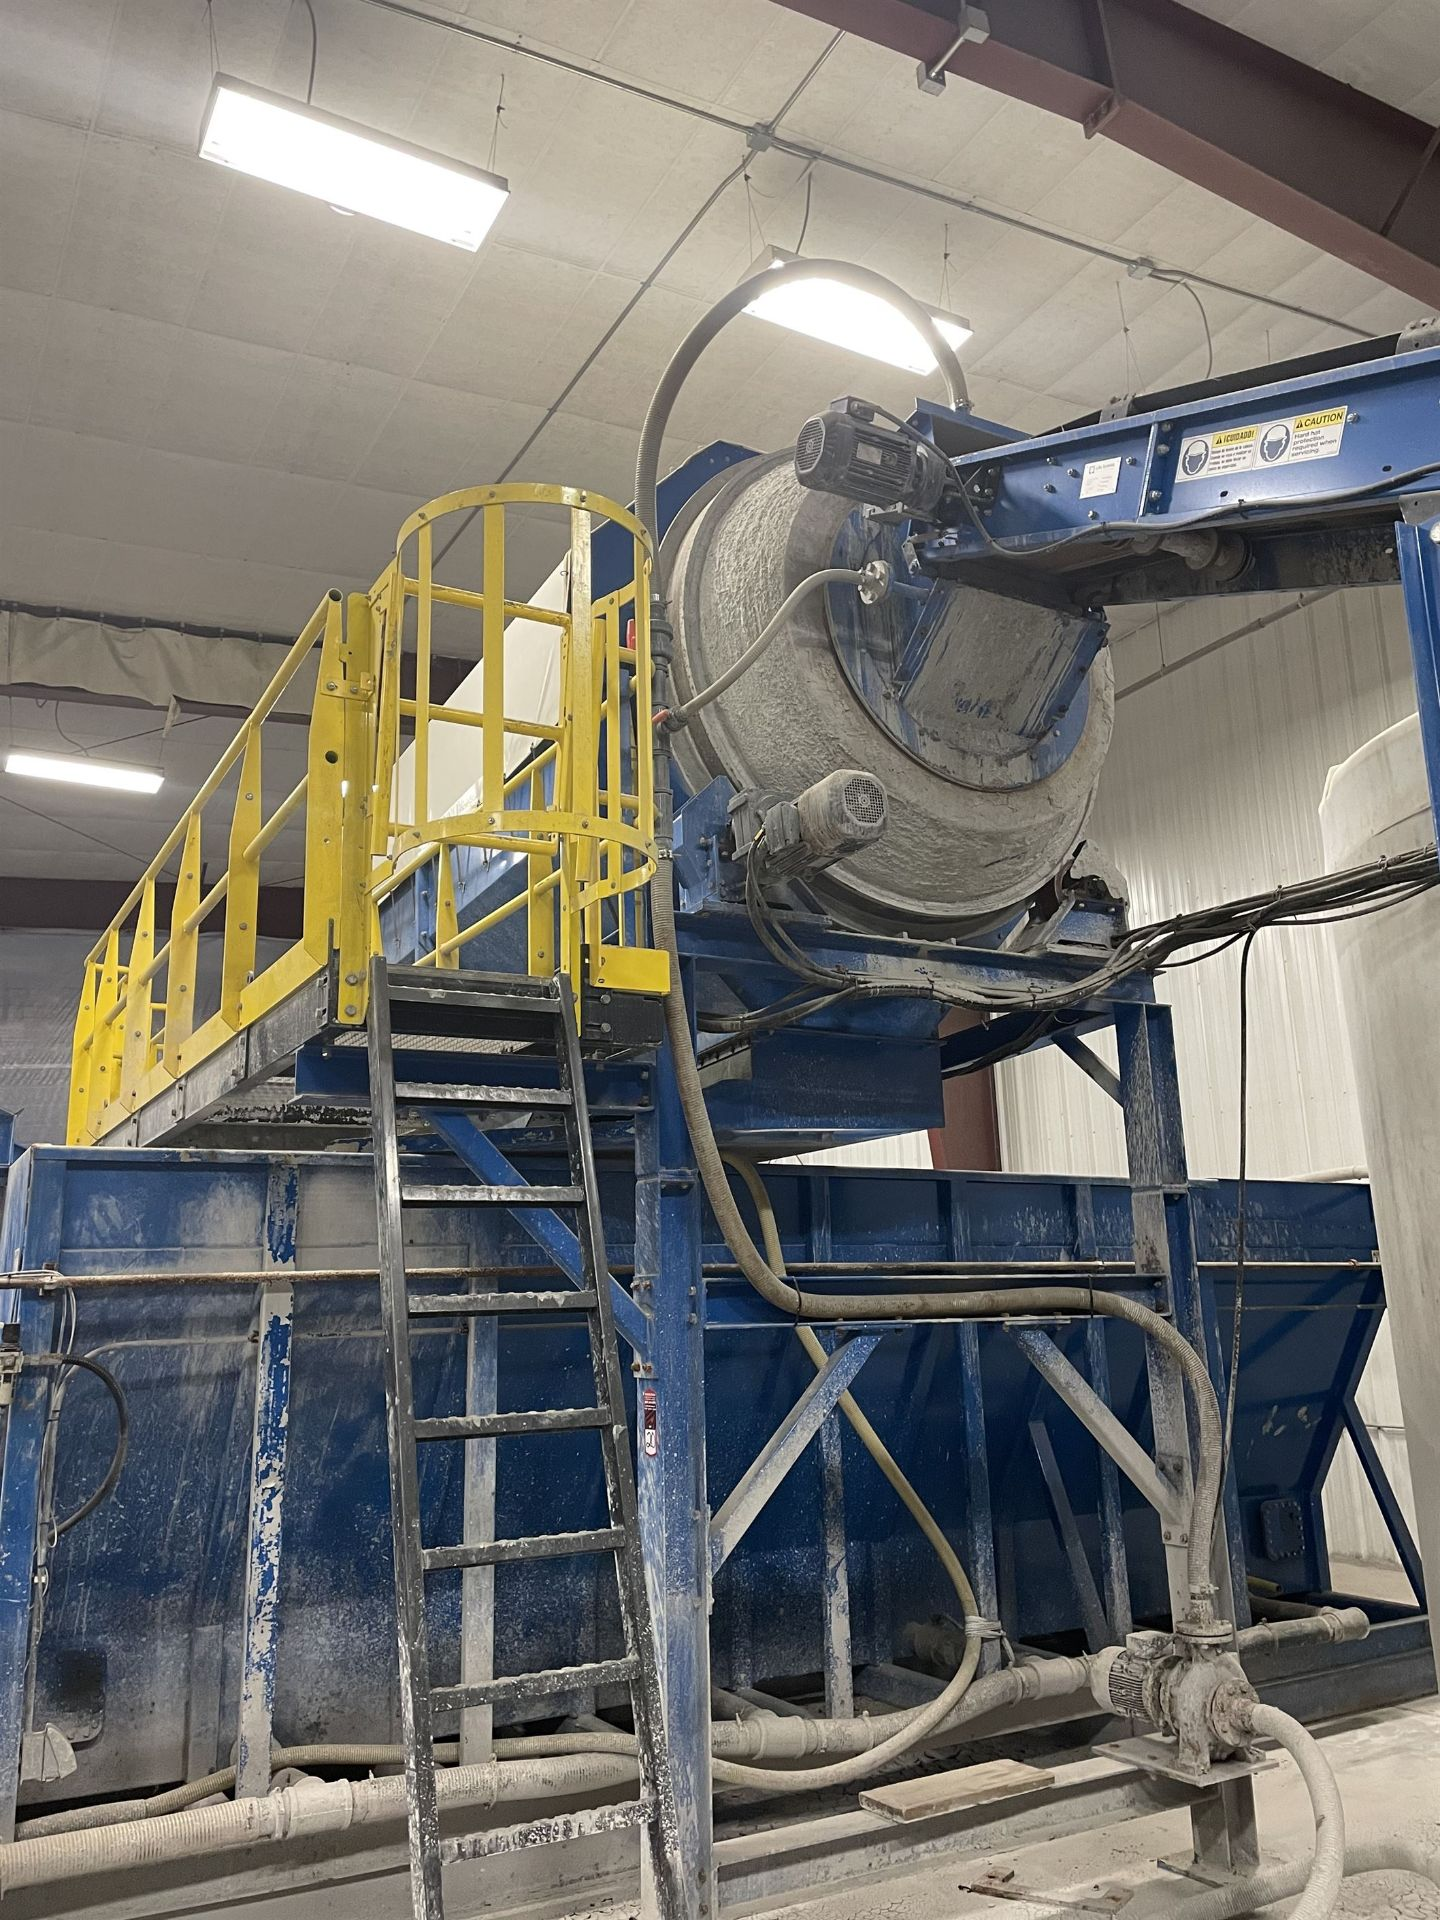 2015 LUBO SYSTEMS WASHING DRUM 1800x5000 Rotary Washing Drum, s/n 800108-0160, 1.8 m Drum - Image 2 of 6